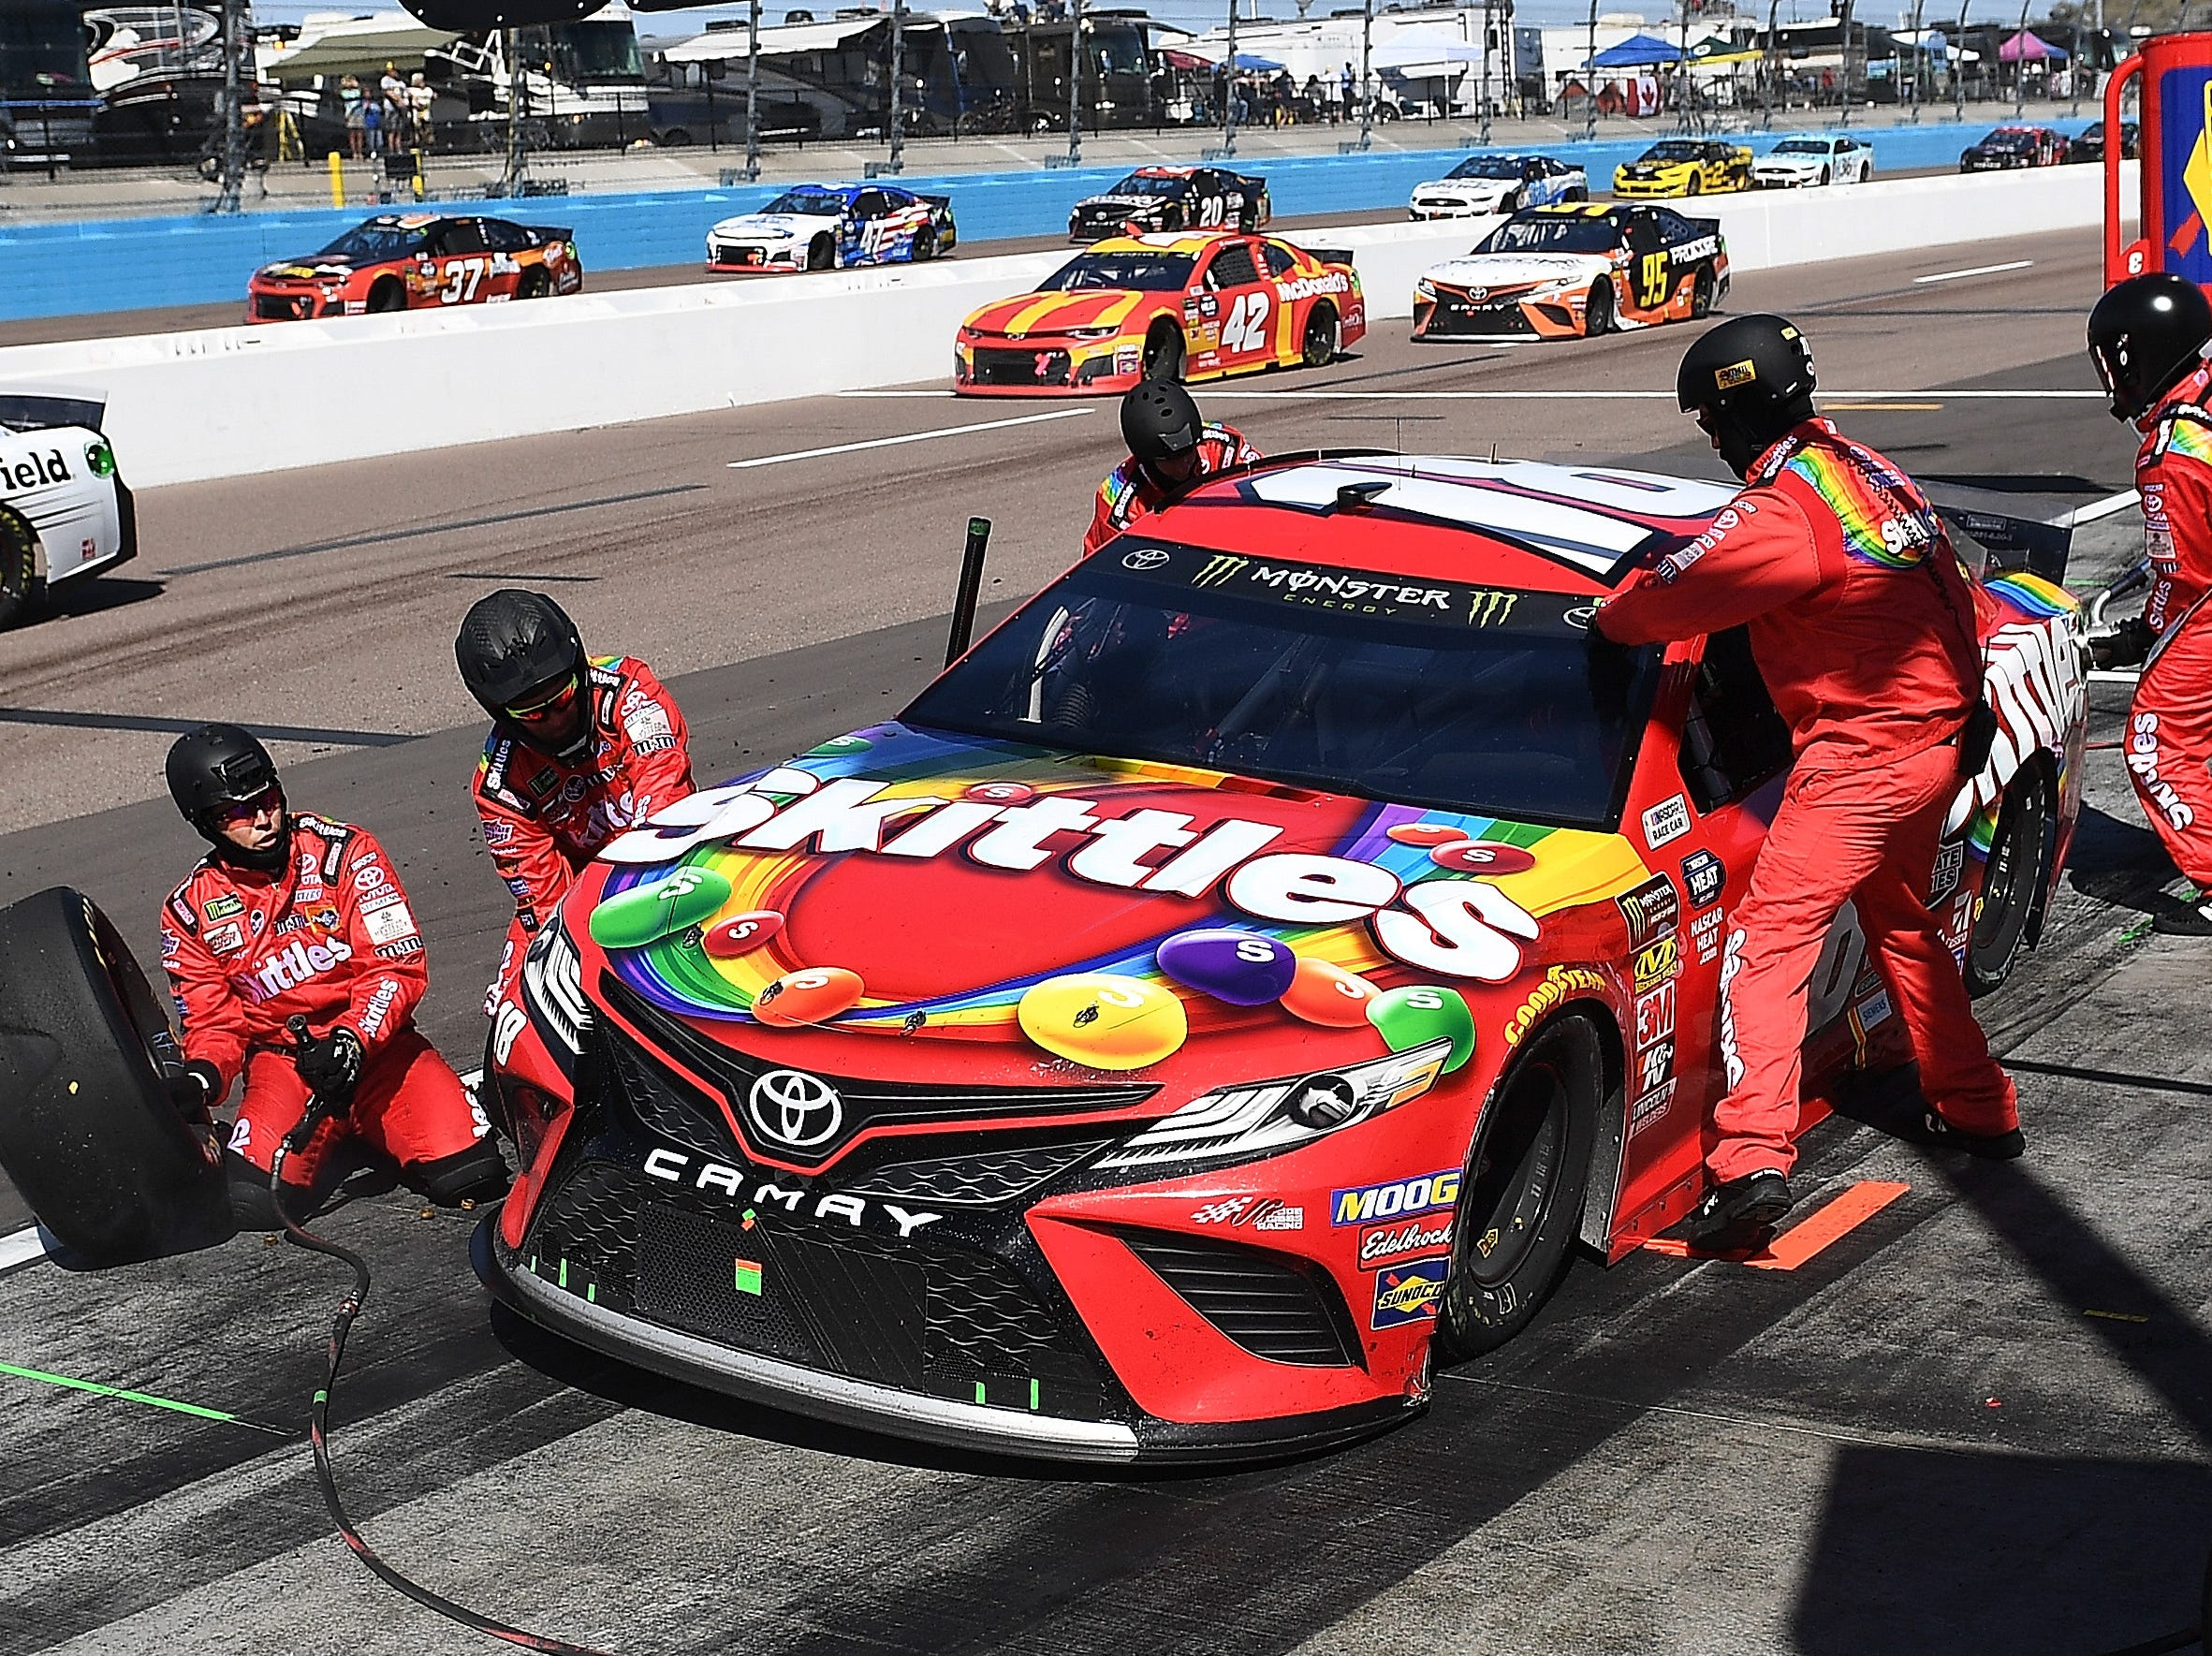 AVONDALE, AZ - MARCH 10:  Kyle Busch, driver of the #18 Skittles Toyota, pits during the Monster Energy NASCAR Cup Series TicketGuardian 500 at ISM Raceway on March 10, 2019 in Avondale, Arizona.  (Photo by Stacy Revere/Getty Images)